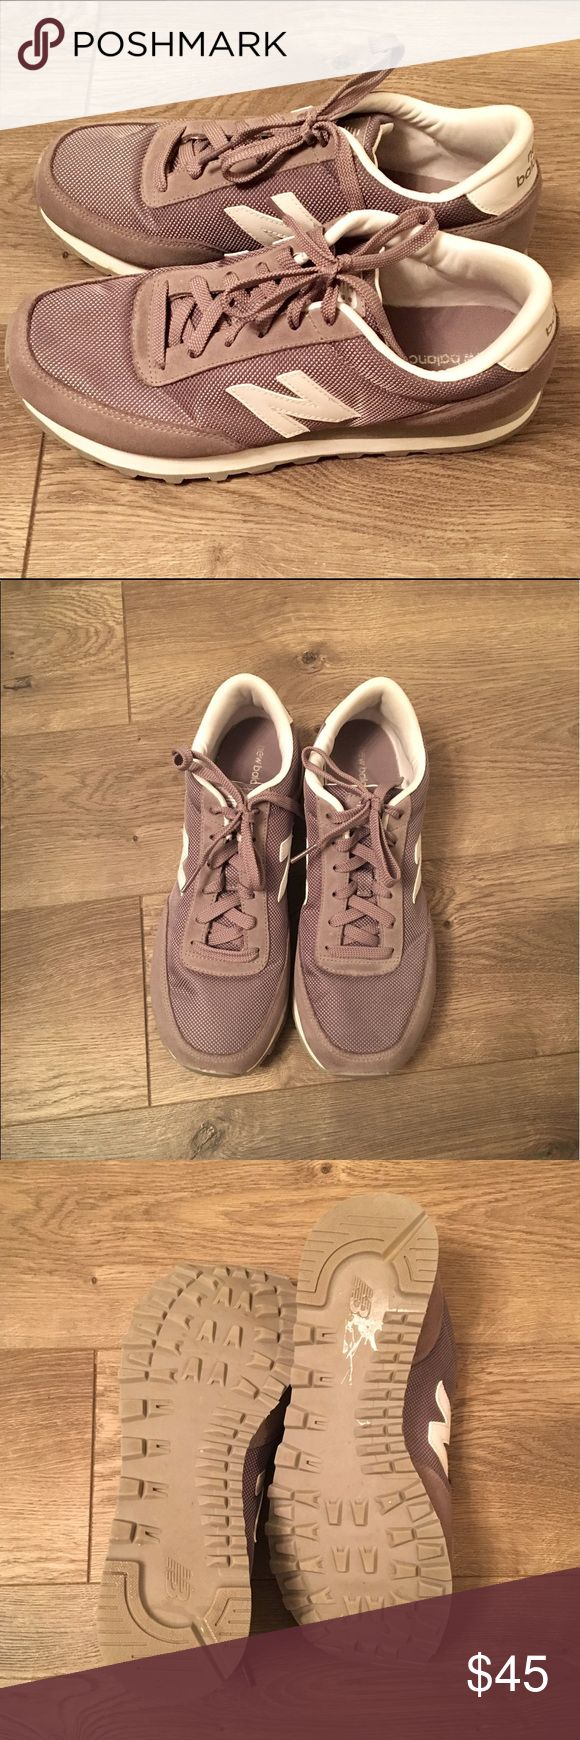 Women's new balance 501 style, practically new worn twice New Balance Shoes Sneakers